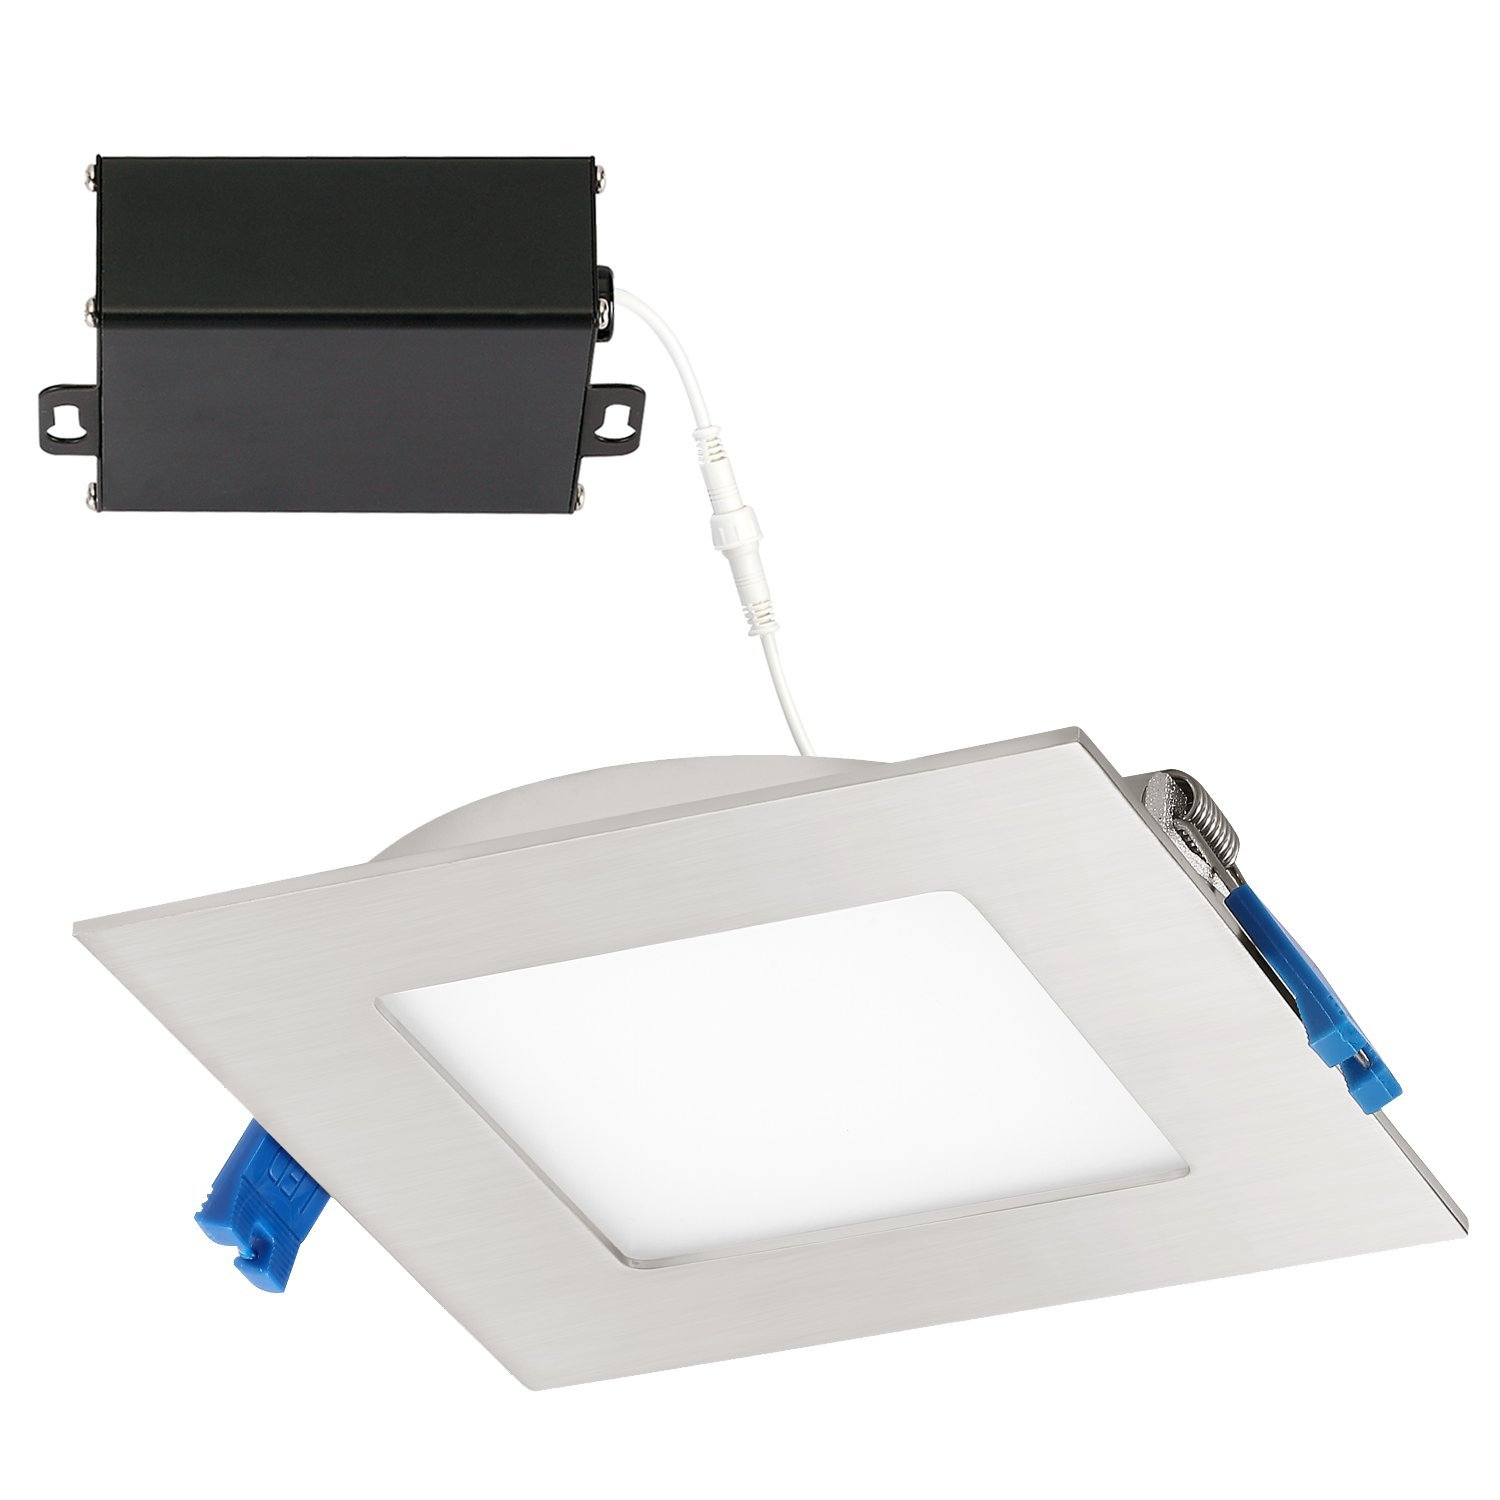 GetInLight Slim Dimmable 6 Inch LED Recessed Lighting, Square Ceiling Panel, Junction Box Included, 4000K(Bright White), 12W, 800lm, Brushed Nickel Finished, cETLus Listed, IN-0308-2-SN-40